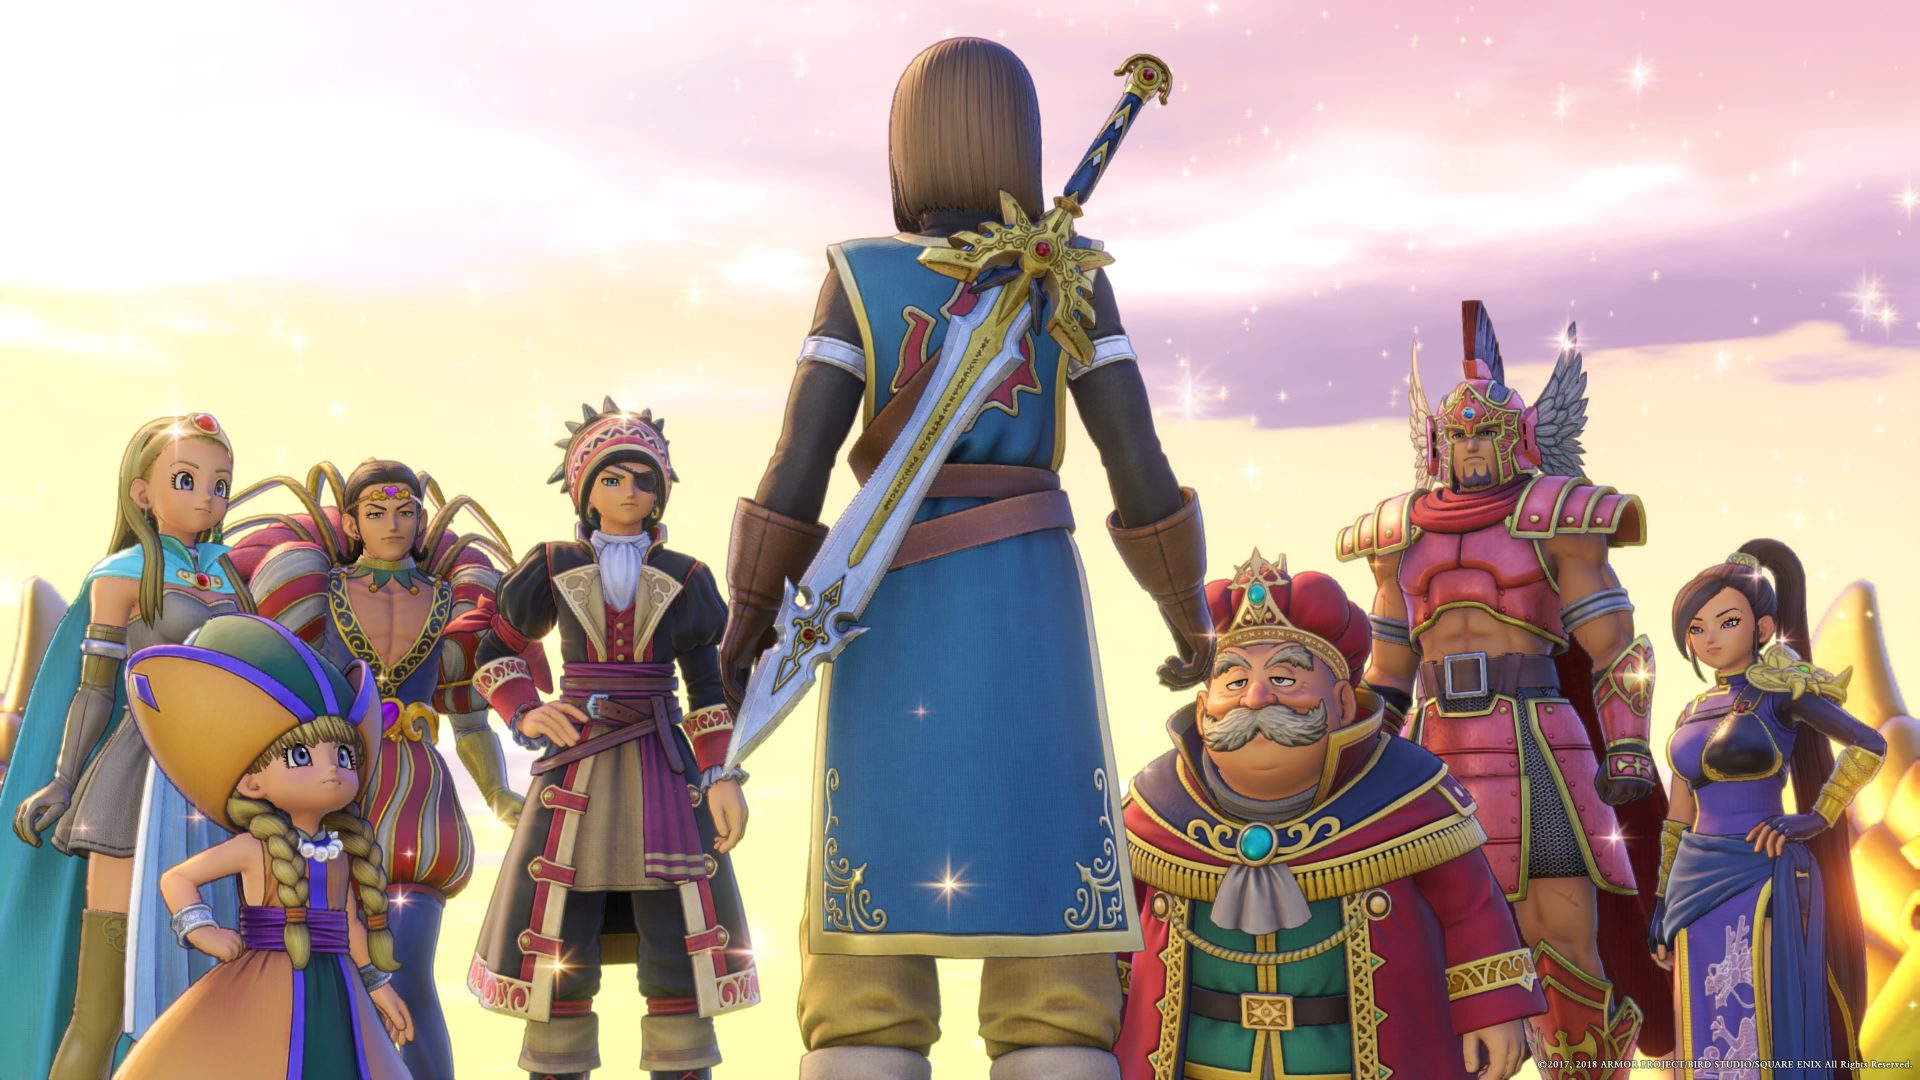 Dragon Quest Xi Is The Best Jrpg Of The Current Games Generation Here S Why Kakuchopurei Com Dragon quest viii music also plays on the field. dragon quest xi is the best jrpg of the